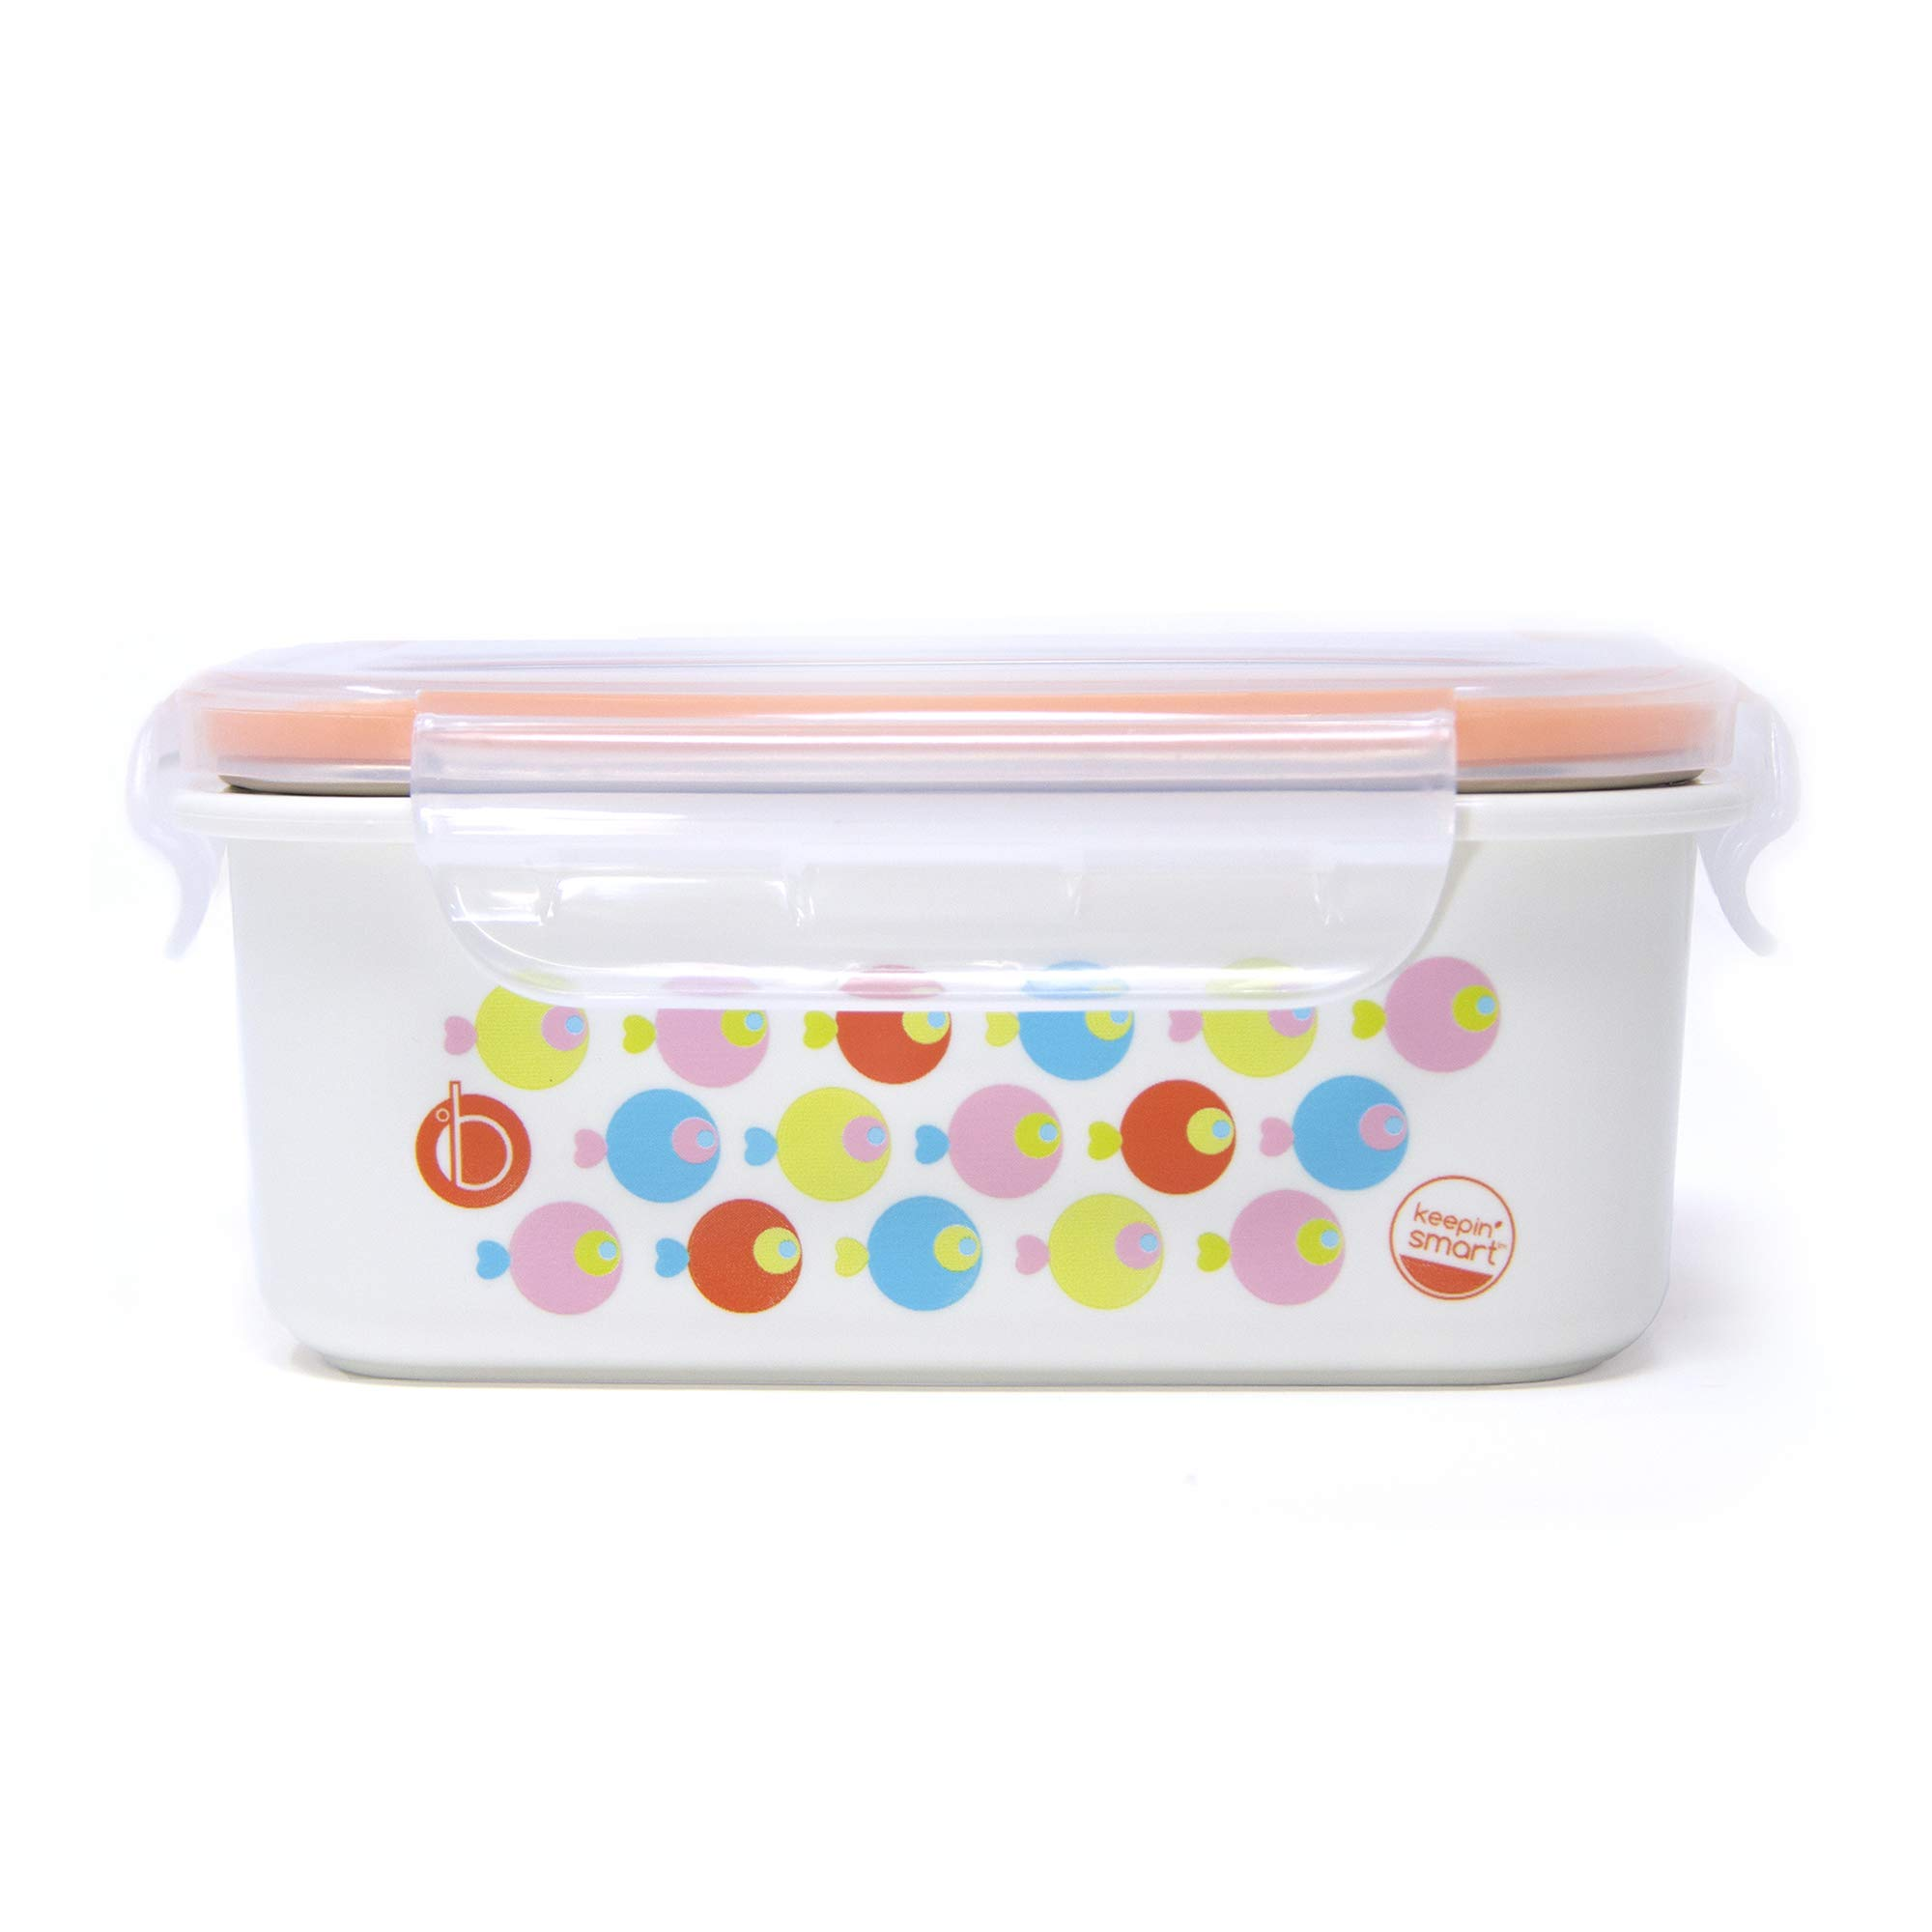 Innobaby Keepin' Fresh Stainless Bento Snack or Lunch Box with Lid for Kids and Toddlers 15 oz, BPA Free Food Storage, Orange Fish